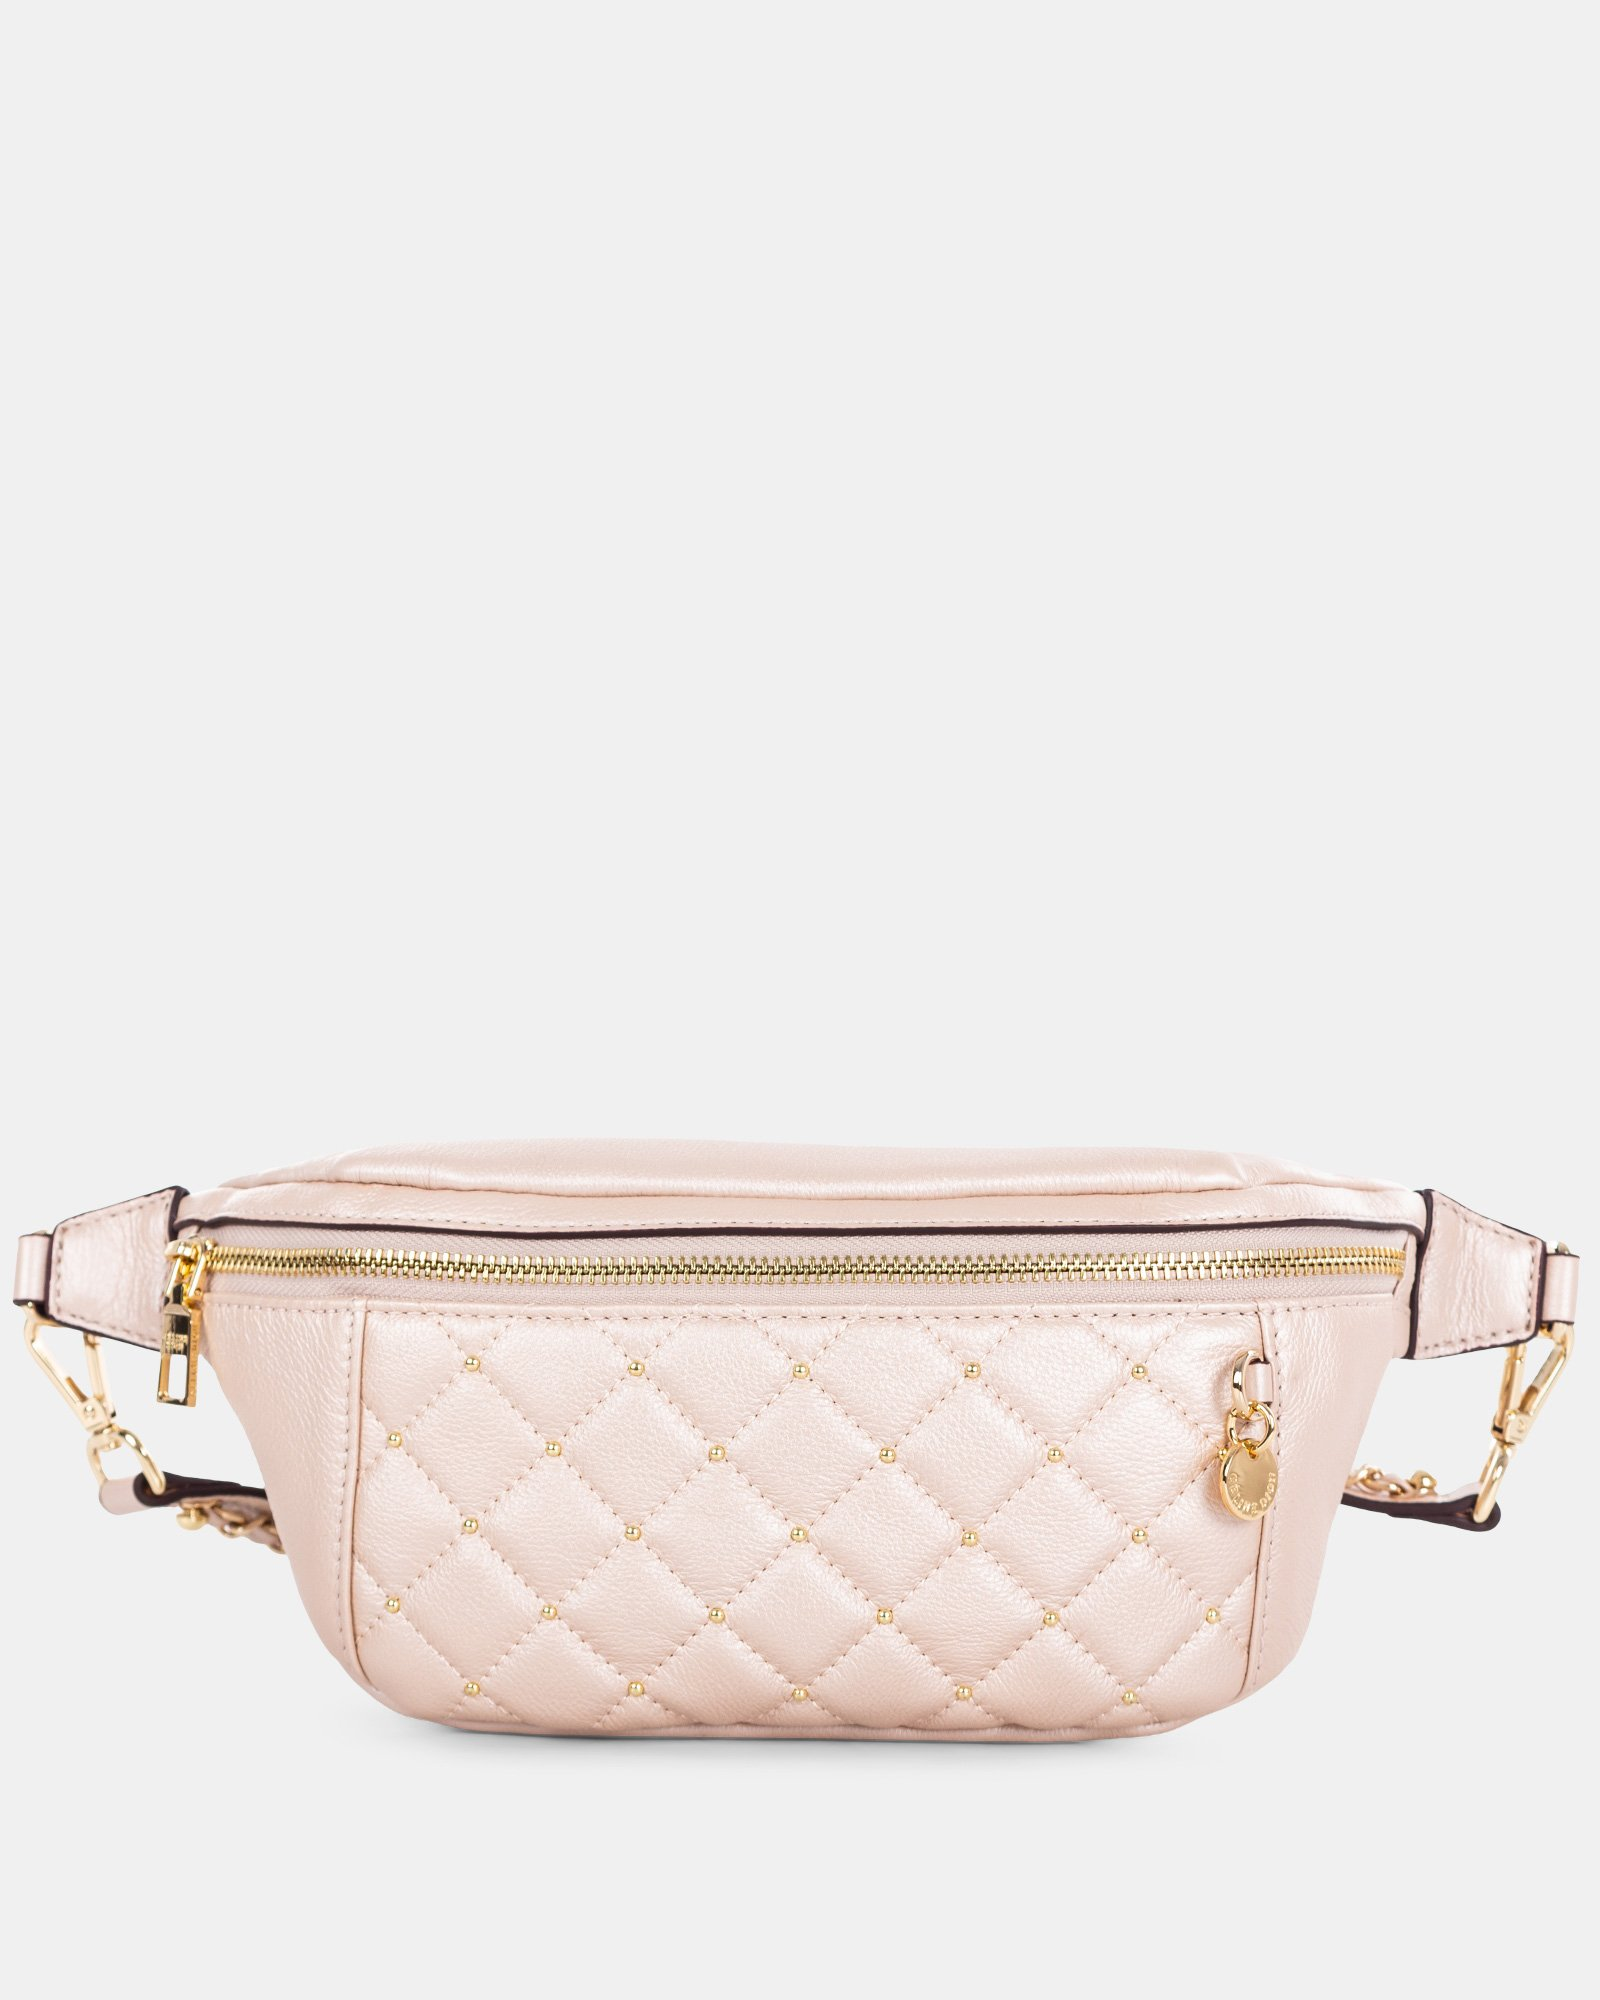 Fastoso - Moneybelt with Front zippered pocket - Rosegold - Céline Dion - Zoom